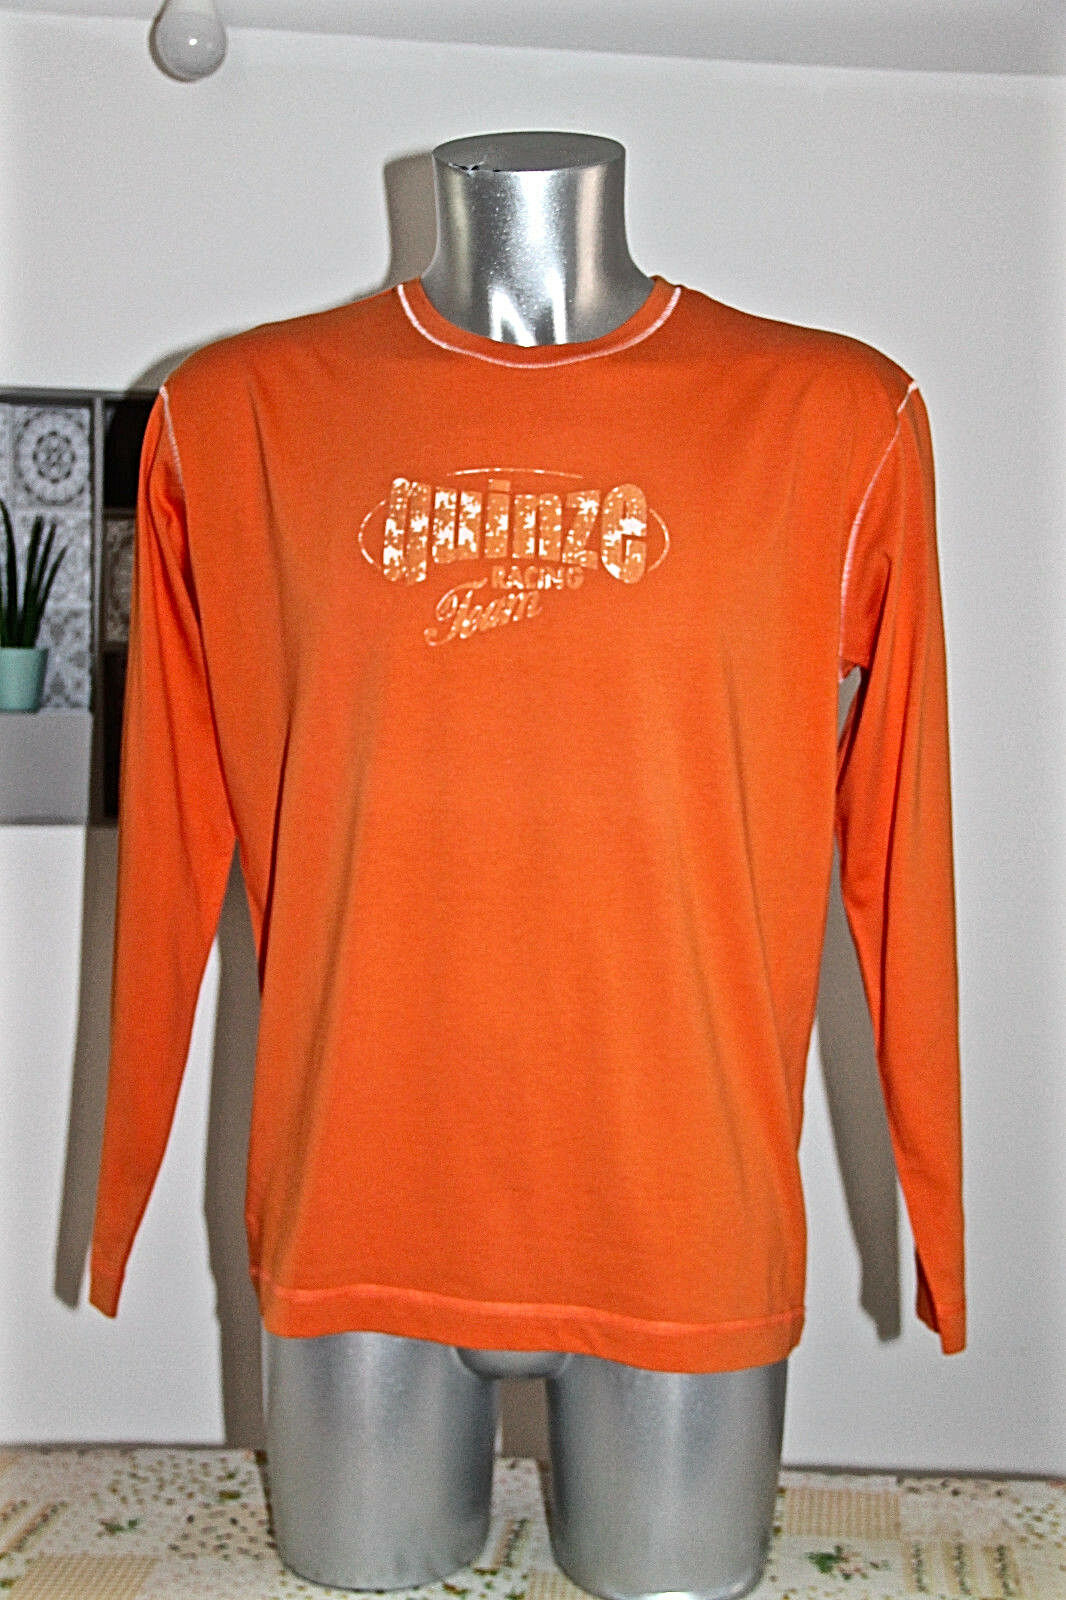 SERGE whiteO Très joli pull sweat homme orange size L EXCELLENT ÉTAT